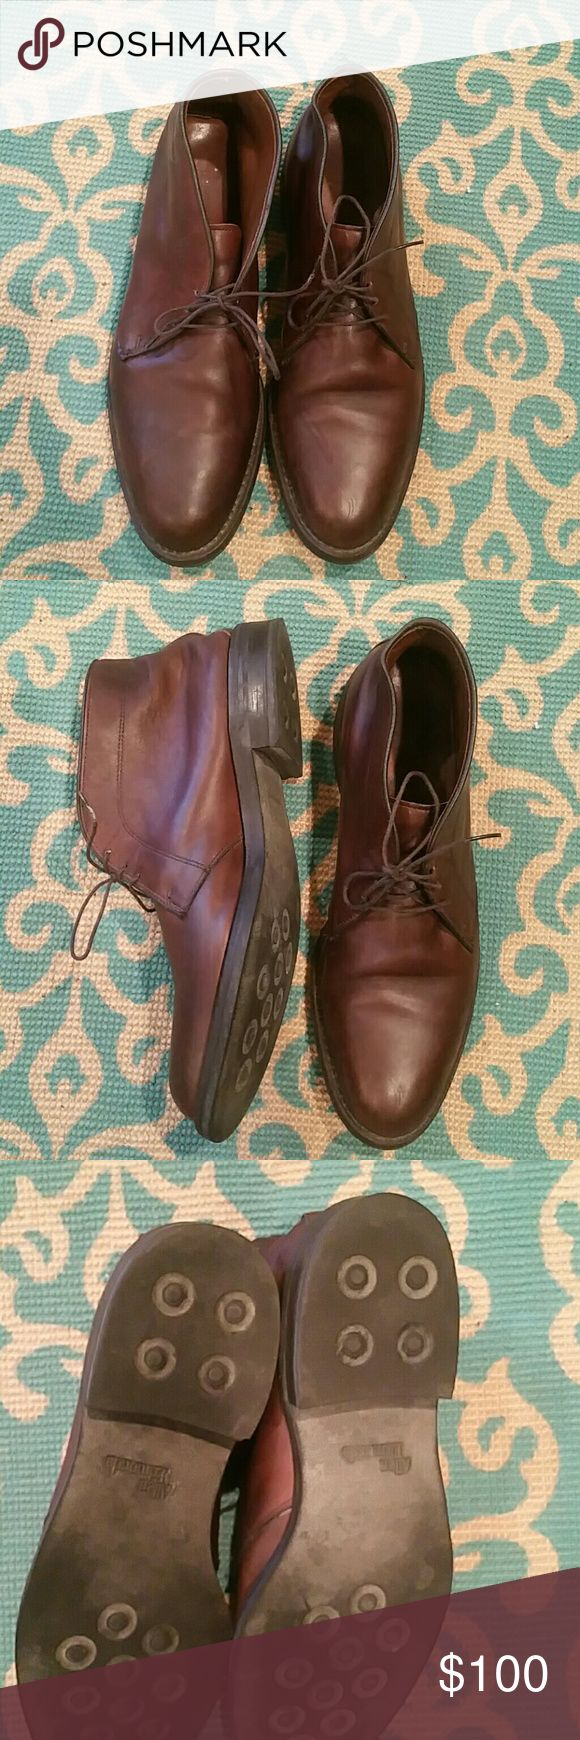 Allen Edmonds Men's Leather Chukka Boots Great condition, brown leather boots. Allen Edmonds Shoes Chukka Boots